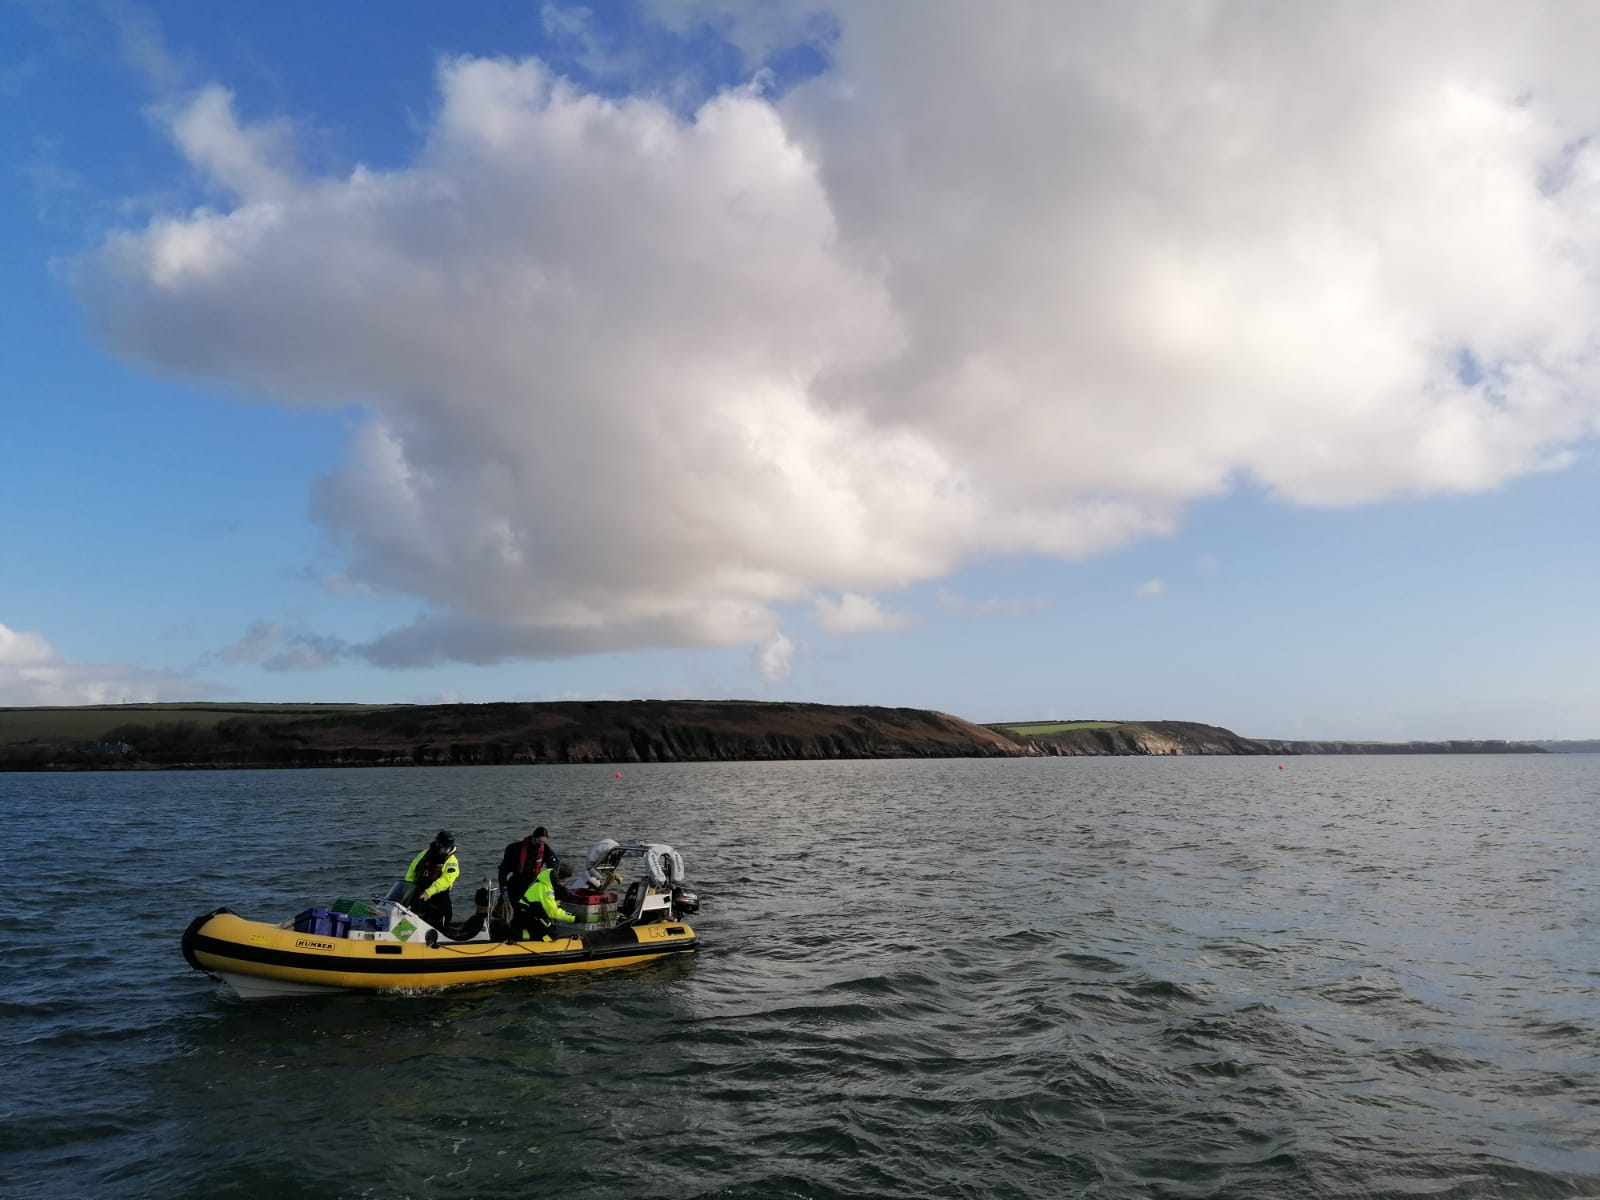 Dale, Pembrokeshire: Nobody was around to see it, but this is the moment the 1,000,000th seed entered the water for our Seagrass Ocean Rescue project in Dale.